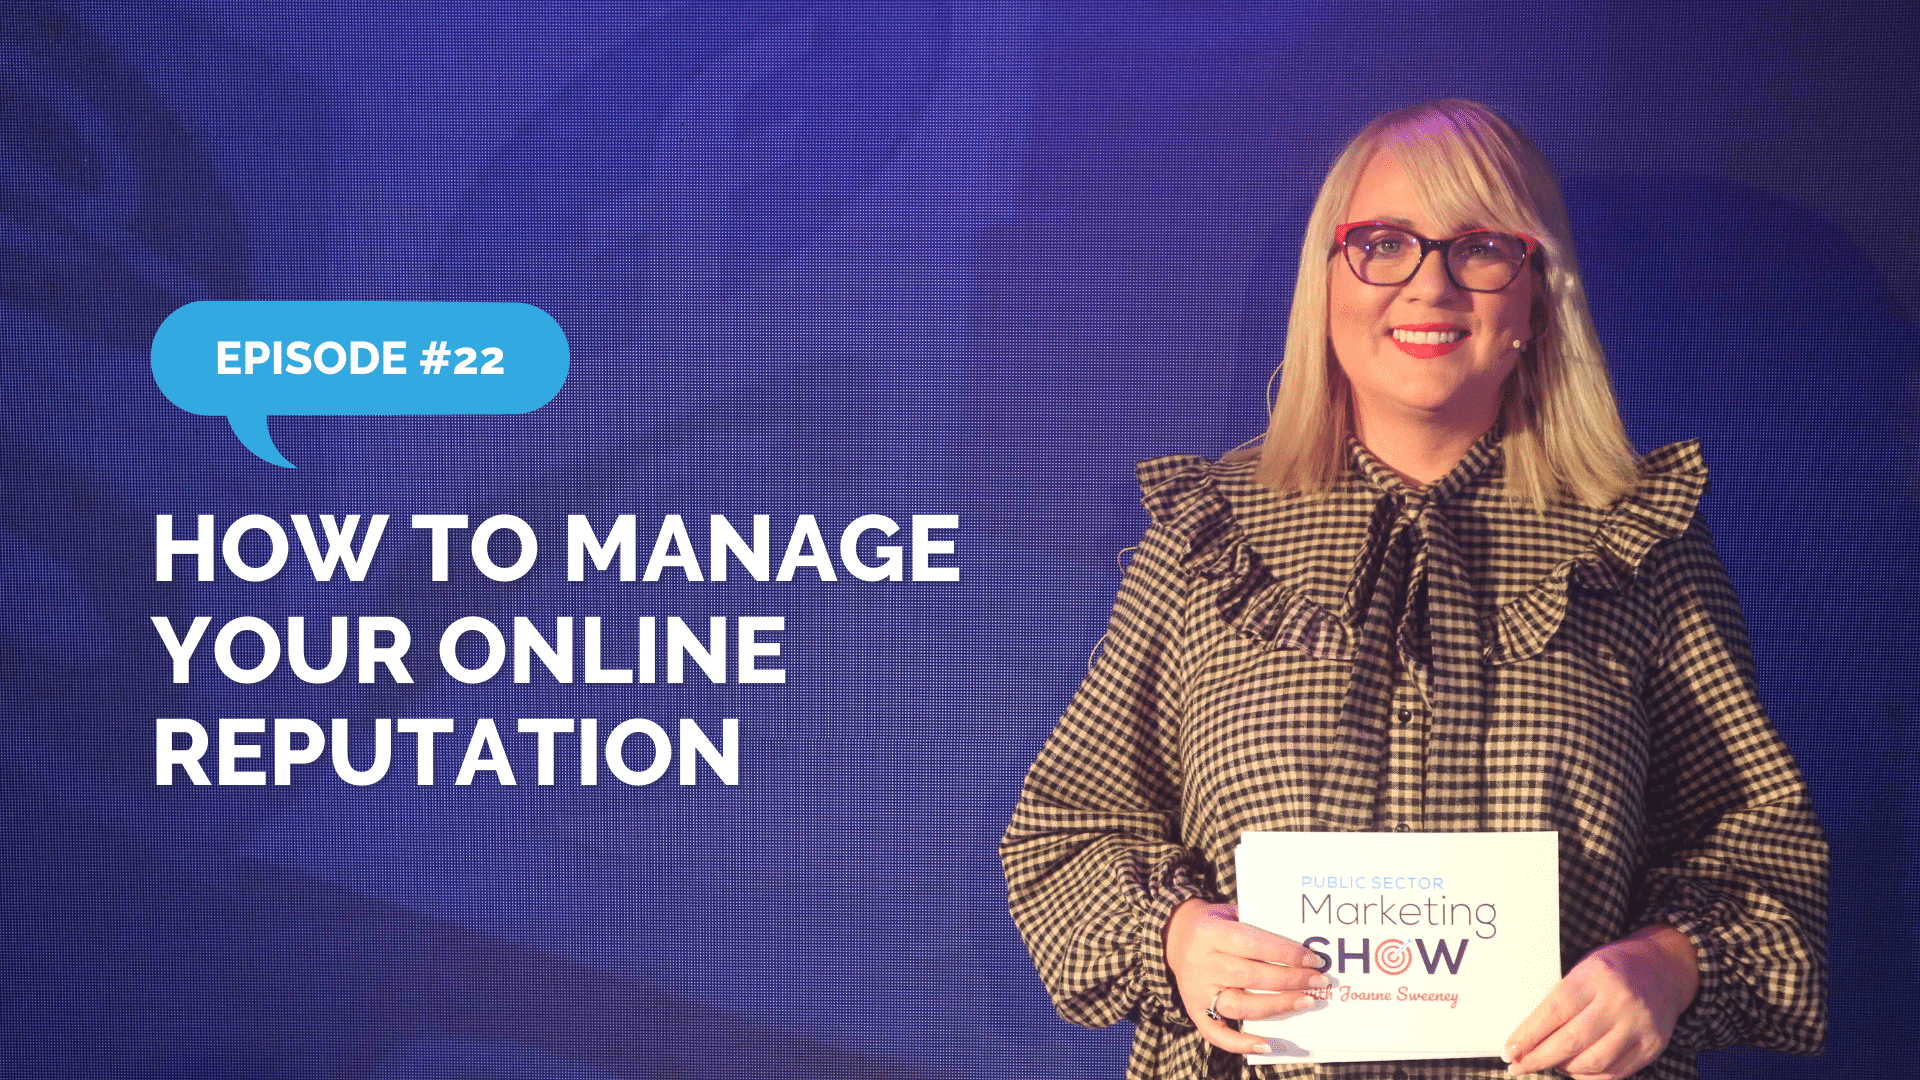 Episode 22 - How to Manage Your Online Reputation